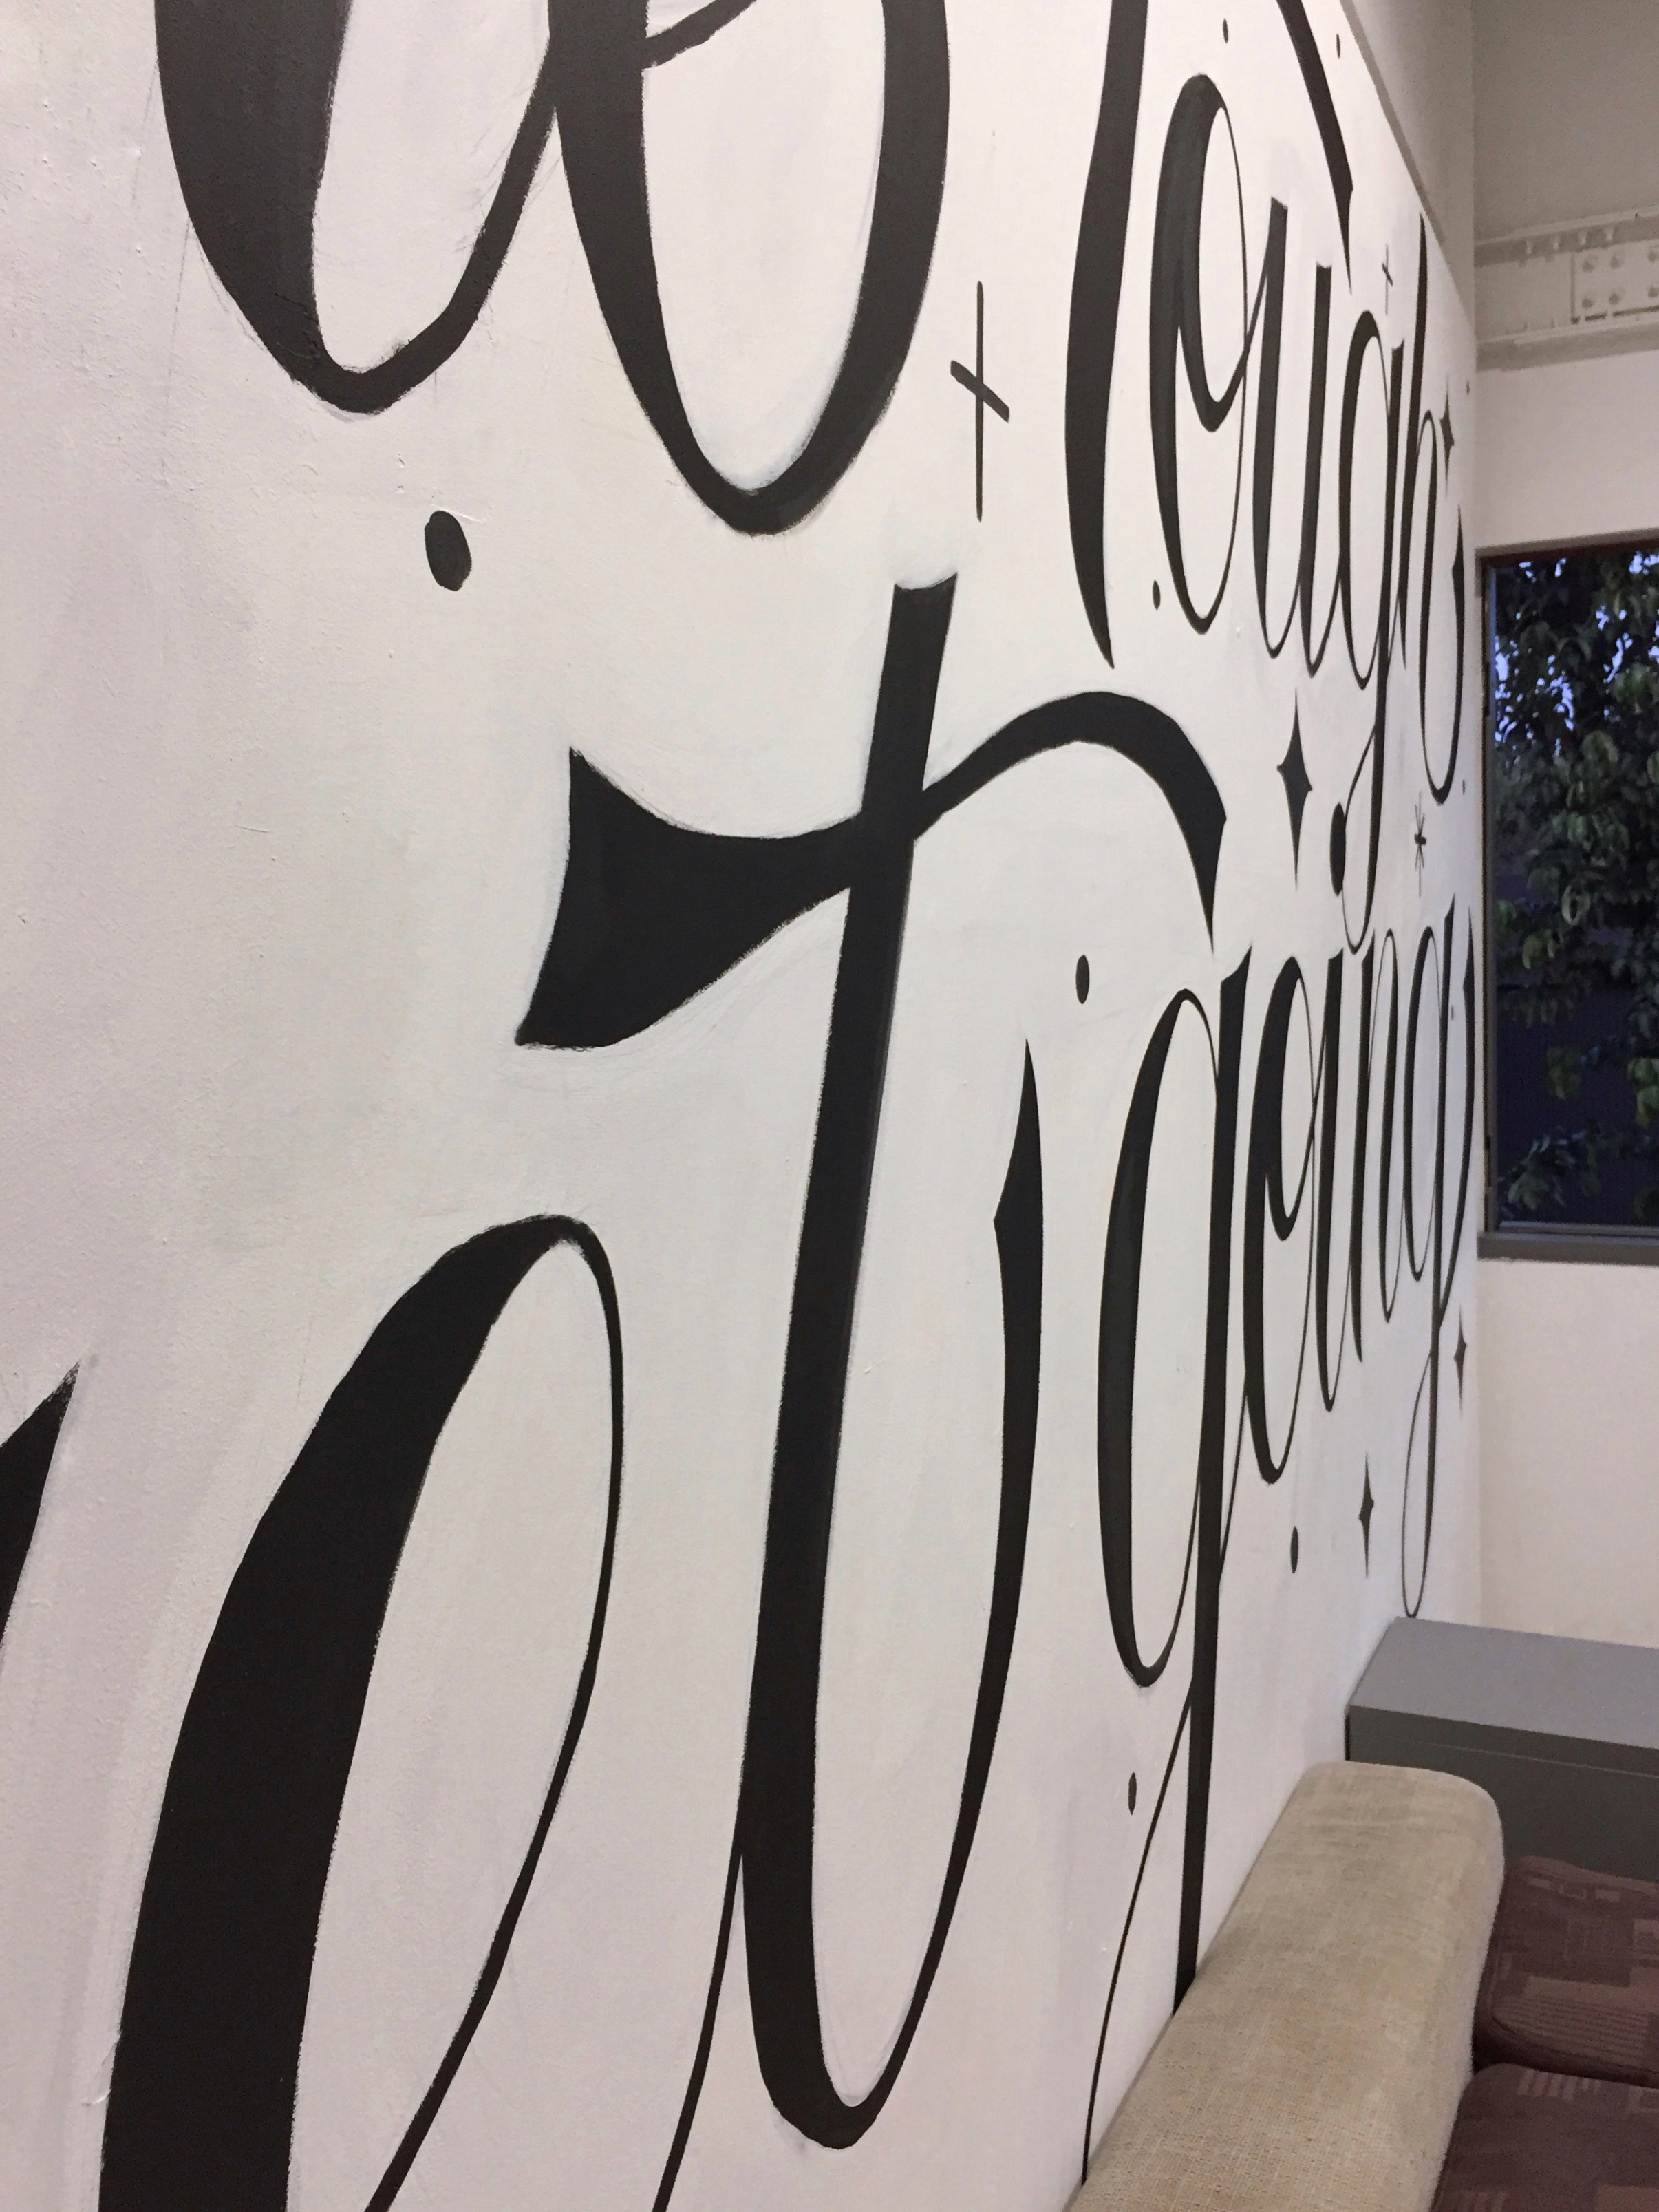 The Tough Get Going Handlettering Mural JTC Launchpad.jpg